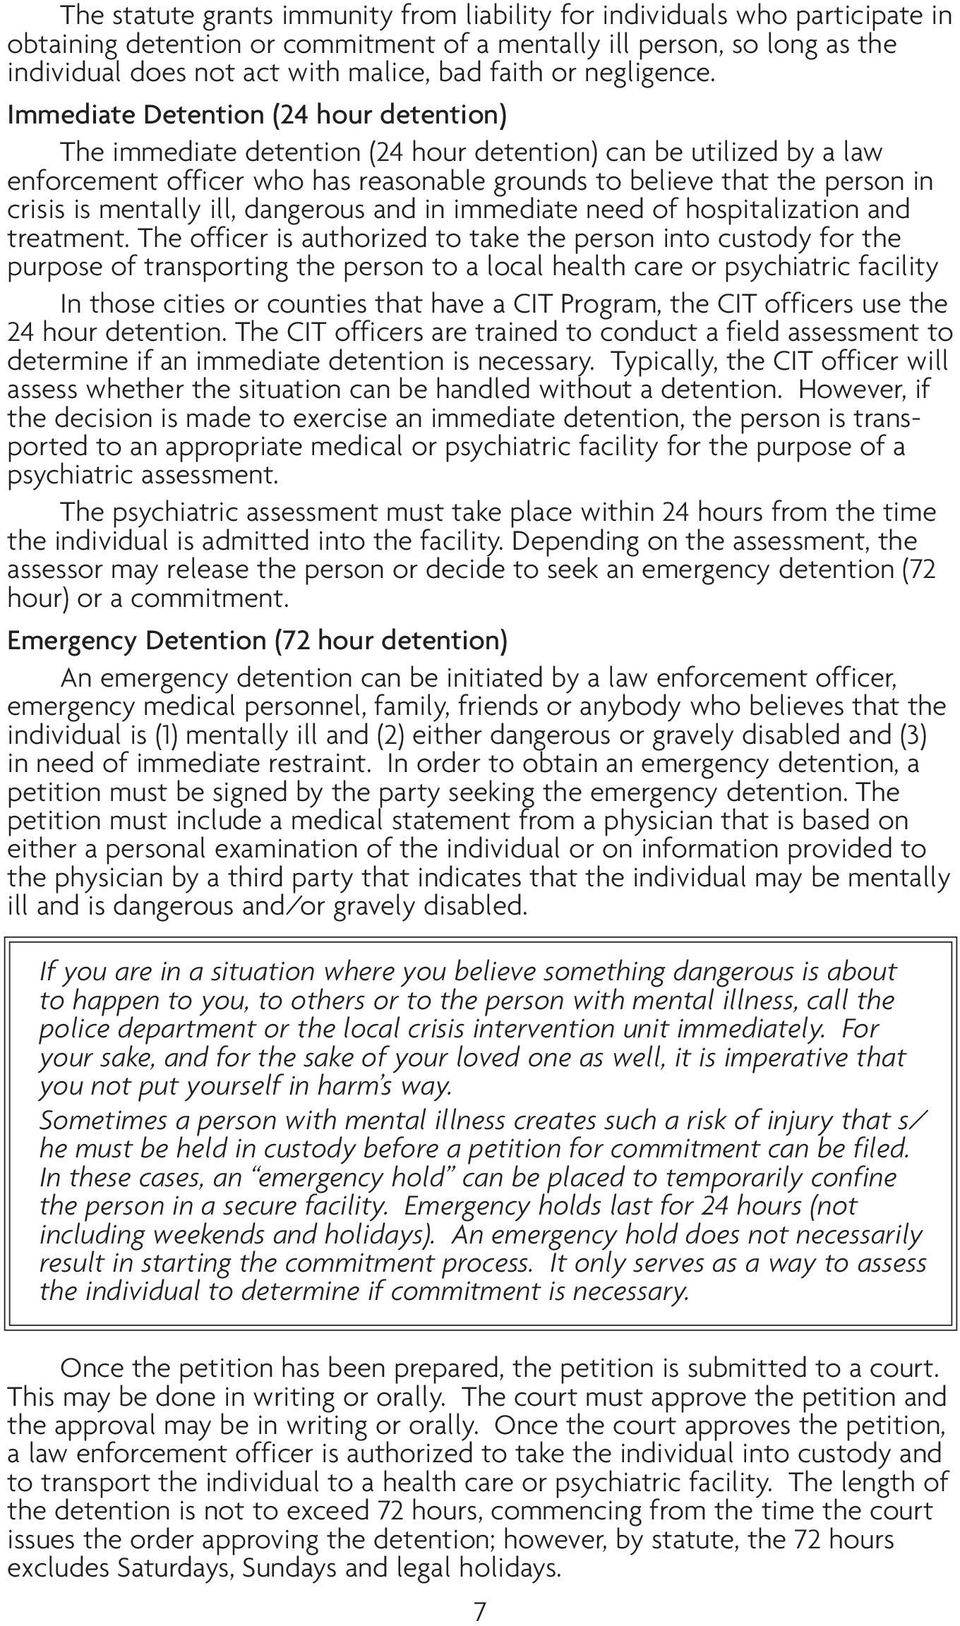 Immediate Detention (24 hour detention) The immediate detention (24 hour detention) can be utilized by a law enforcement officer who has reasonable grounds to believe that the person in crisis is